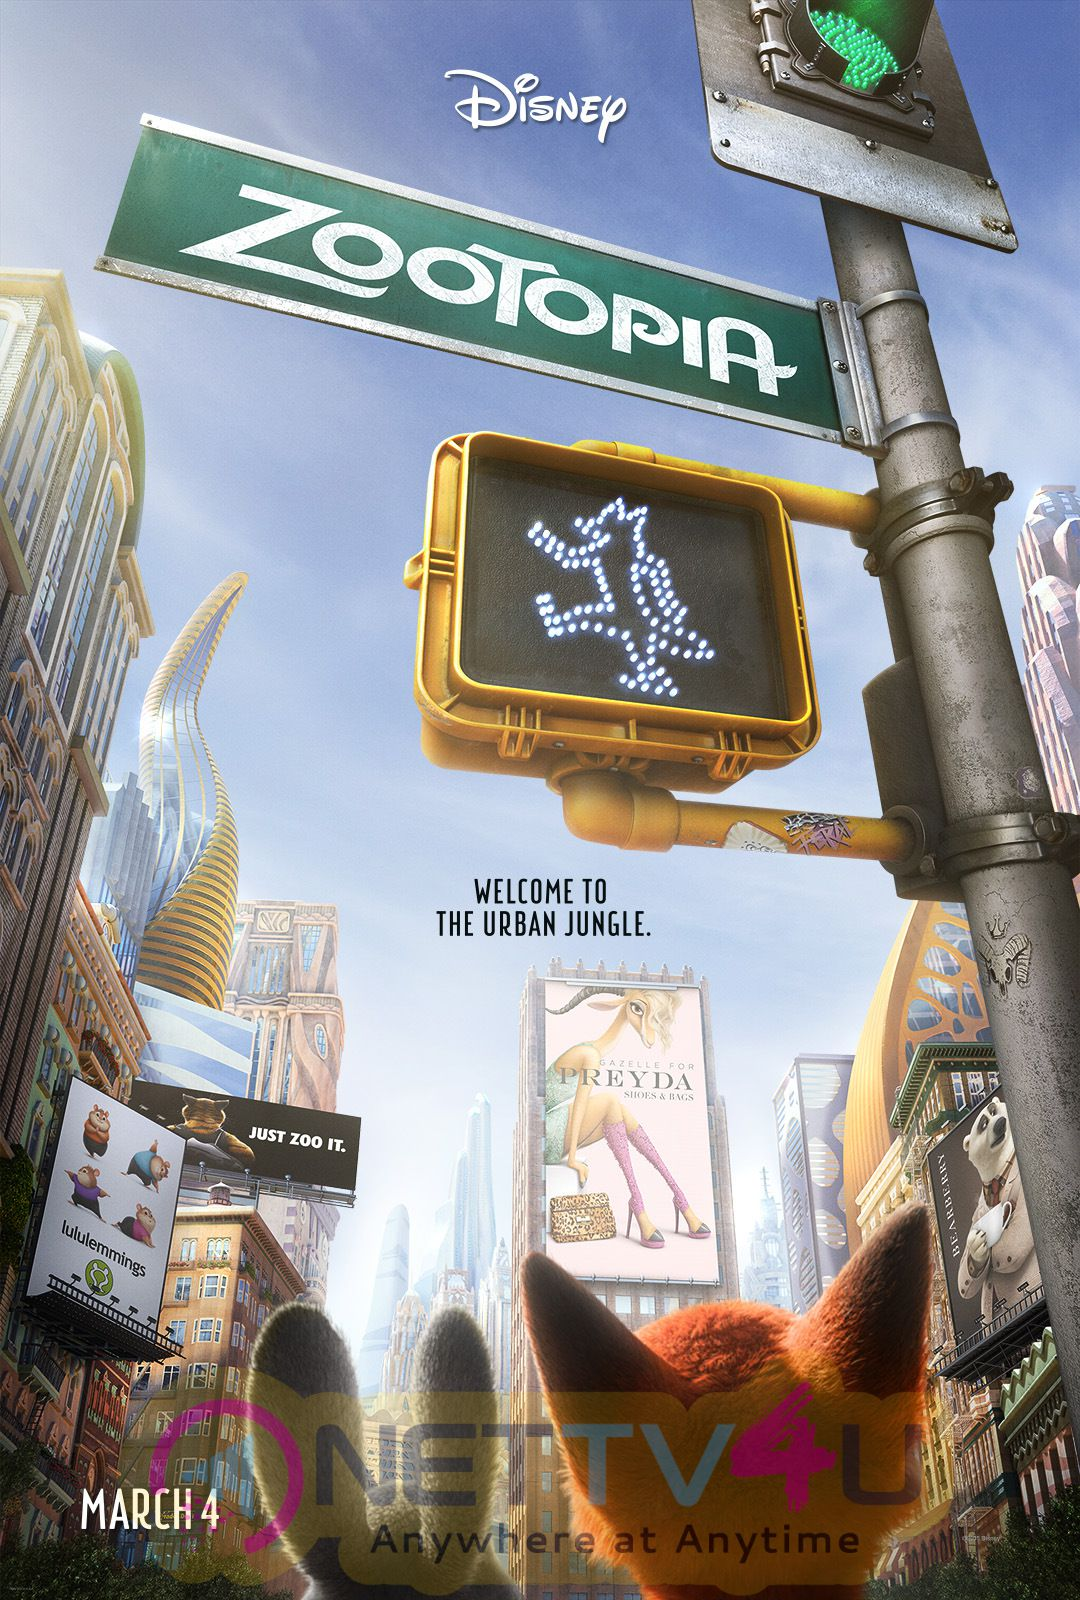 Zootopia Poster Characters Based On 'Lion King' And More Creature Hair Than Frozen! Record Breaking Special Effects In Store For